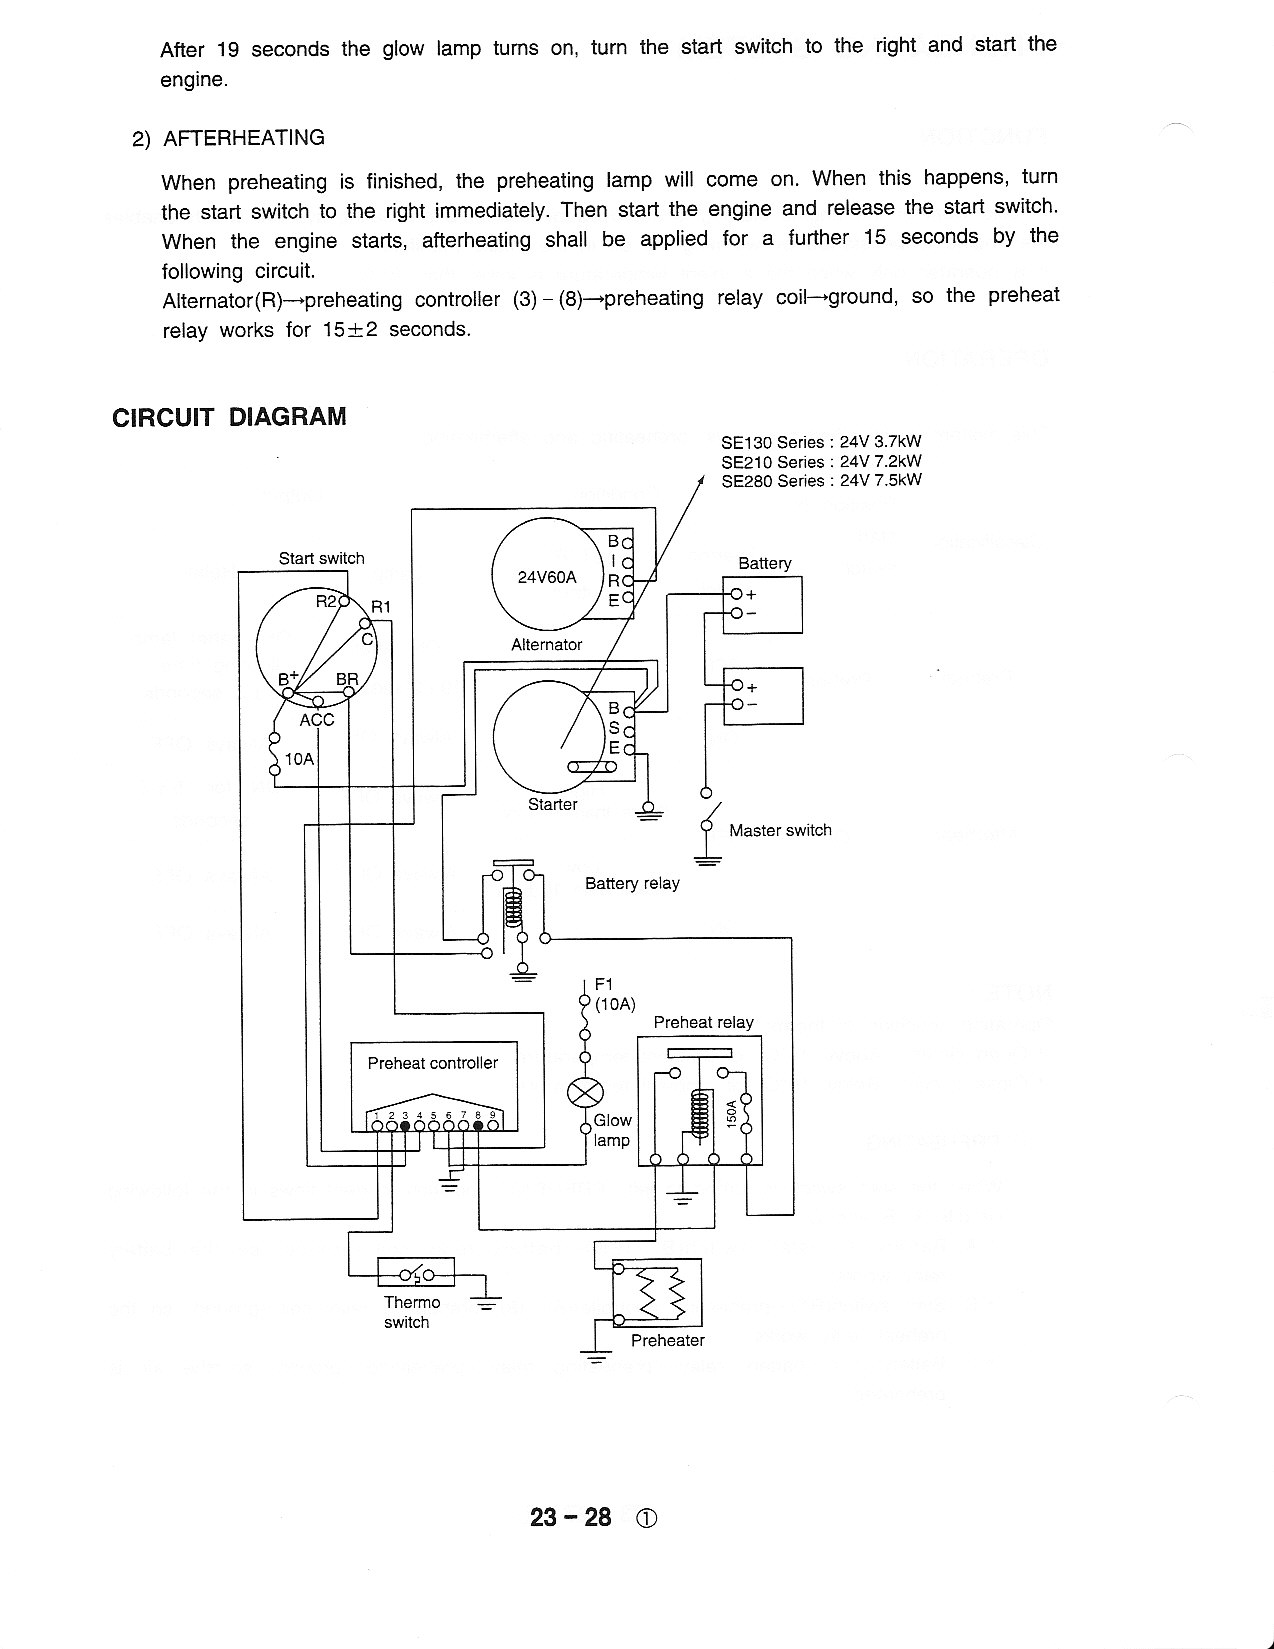 Need A Wiring Schematic For The Starting System On Samsung 130 Hyundai 210lc 7 Diagram Hi Glad That Info Helped Here Is Other You Requested Thanks Dan